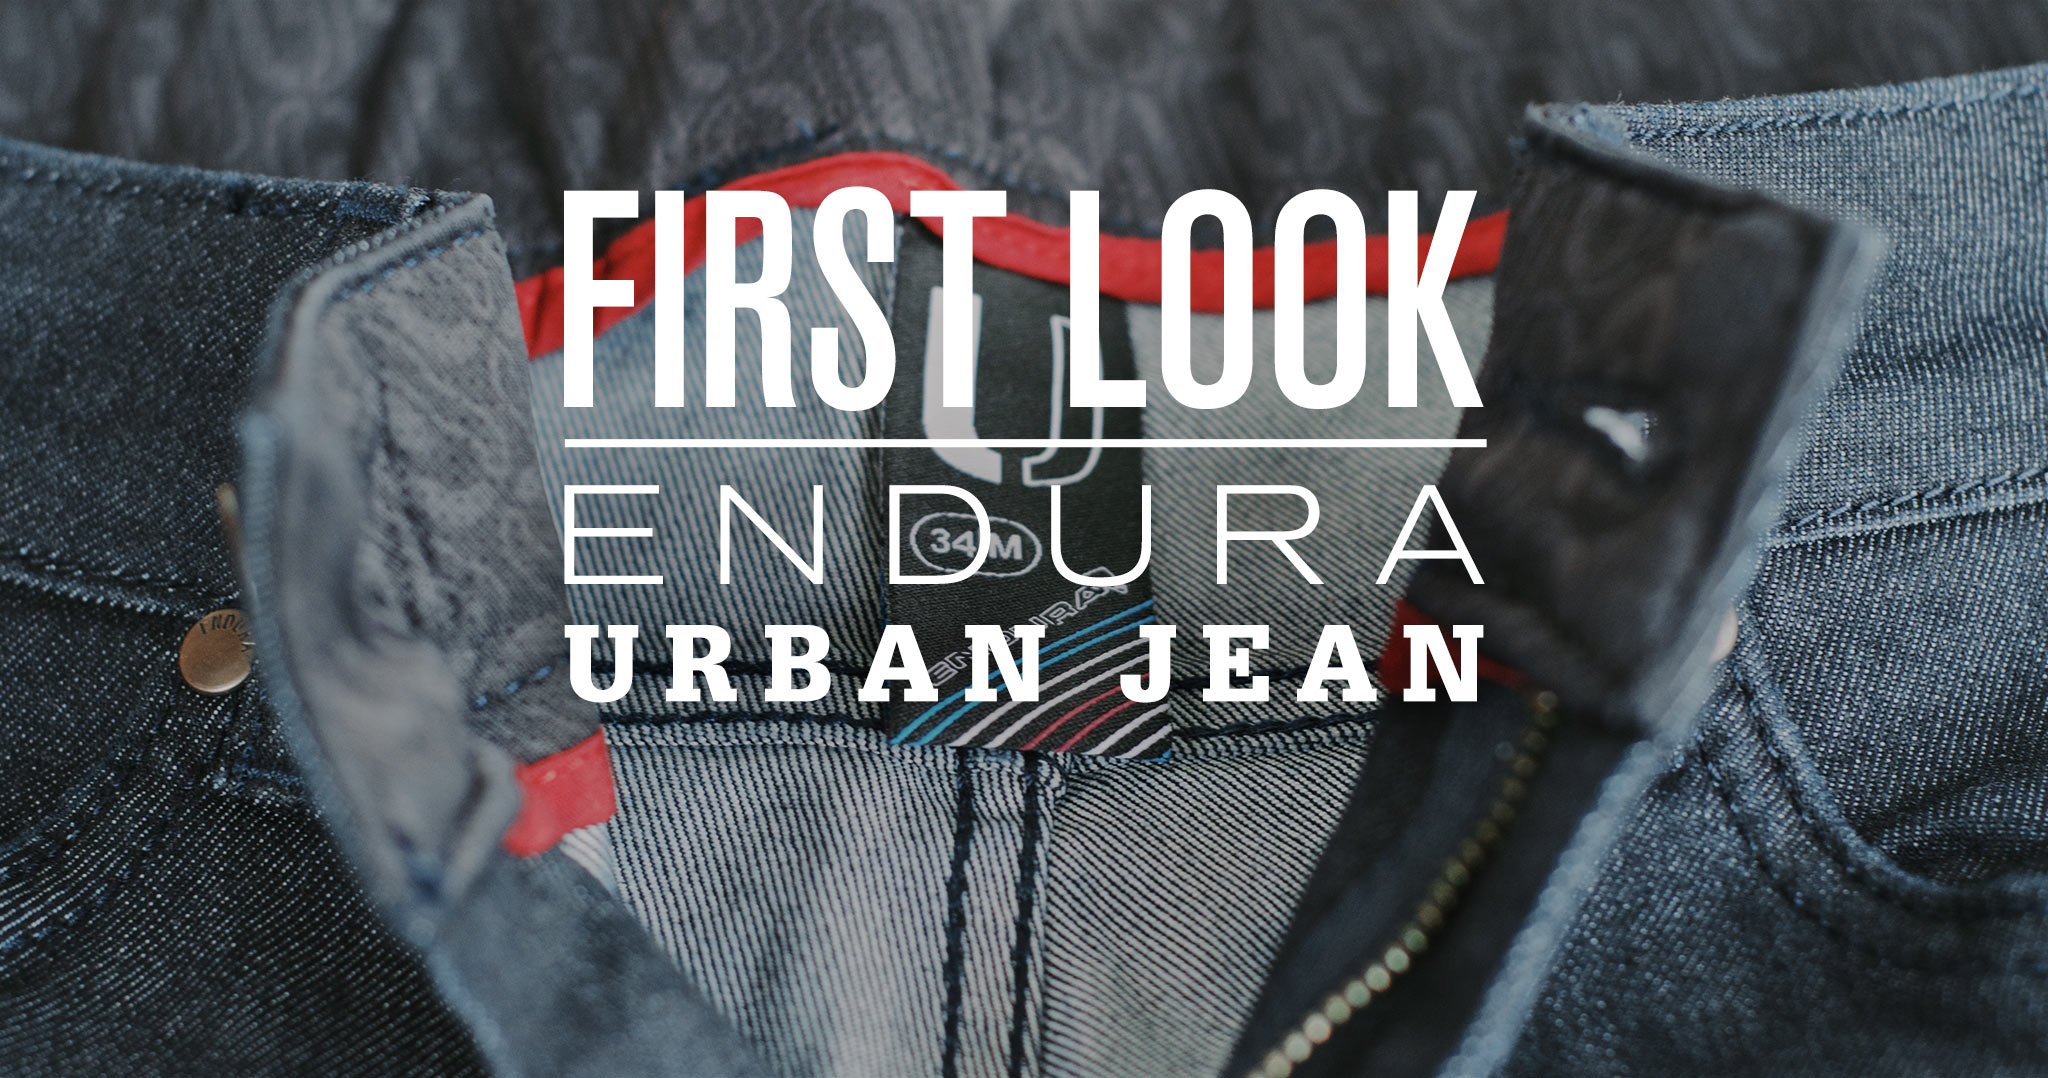 First Look: Endura Urban Jean